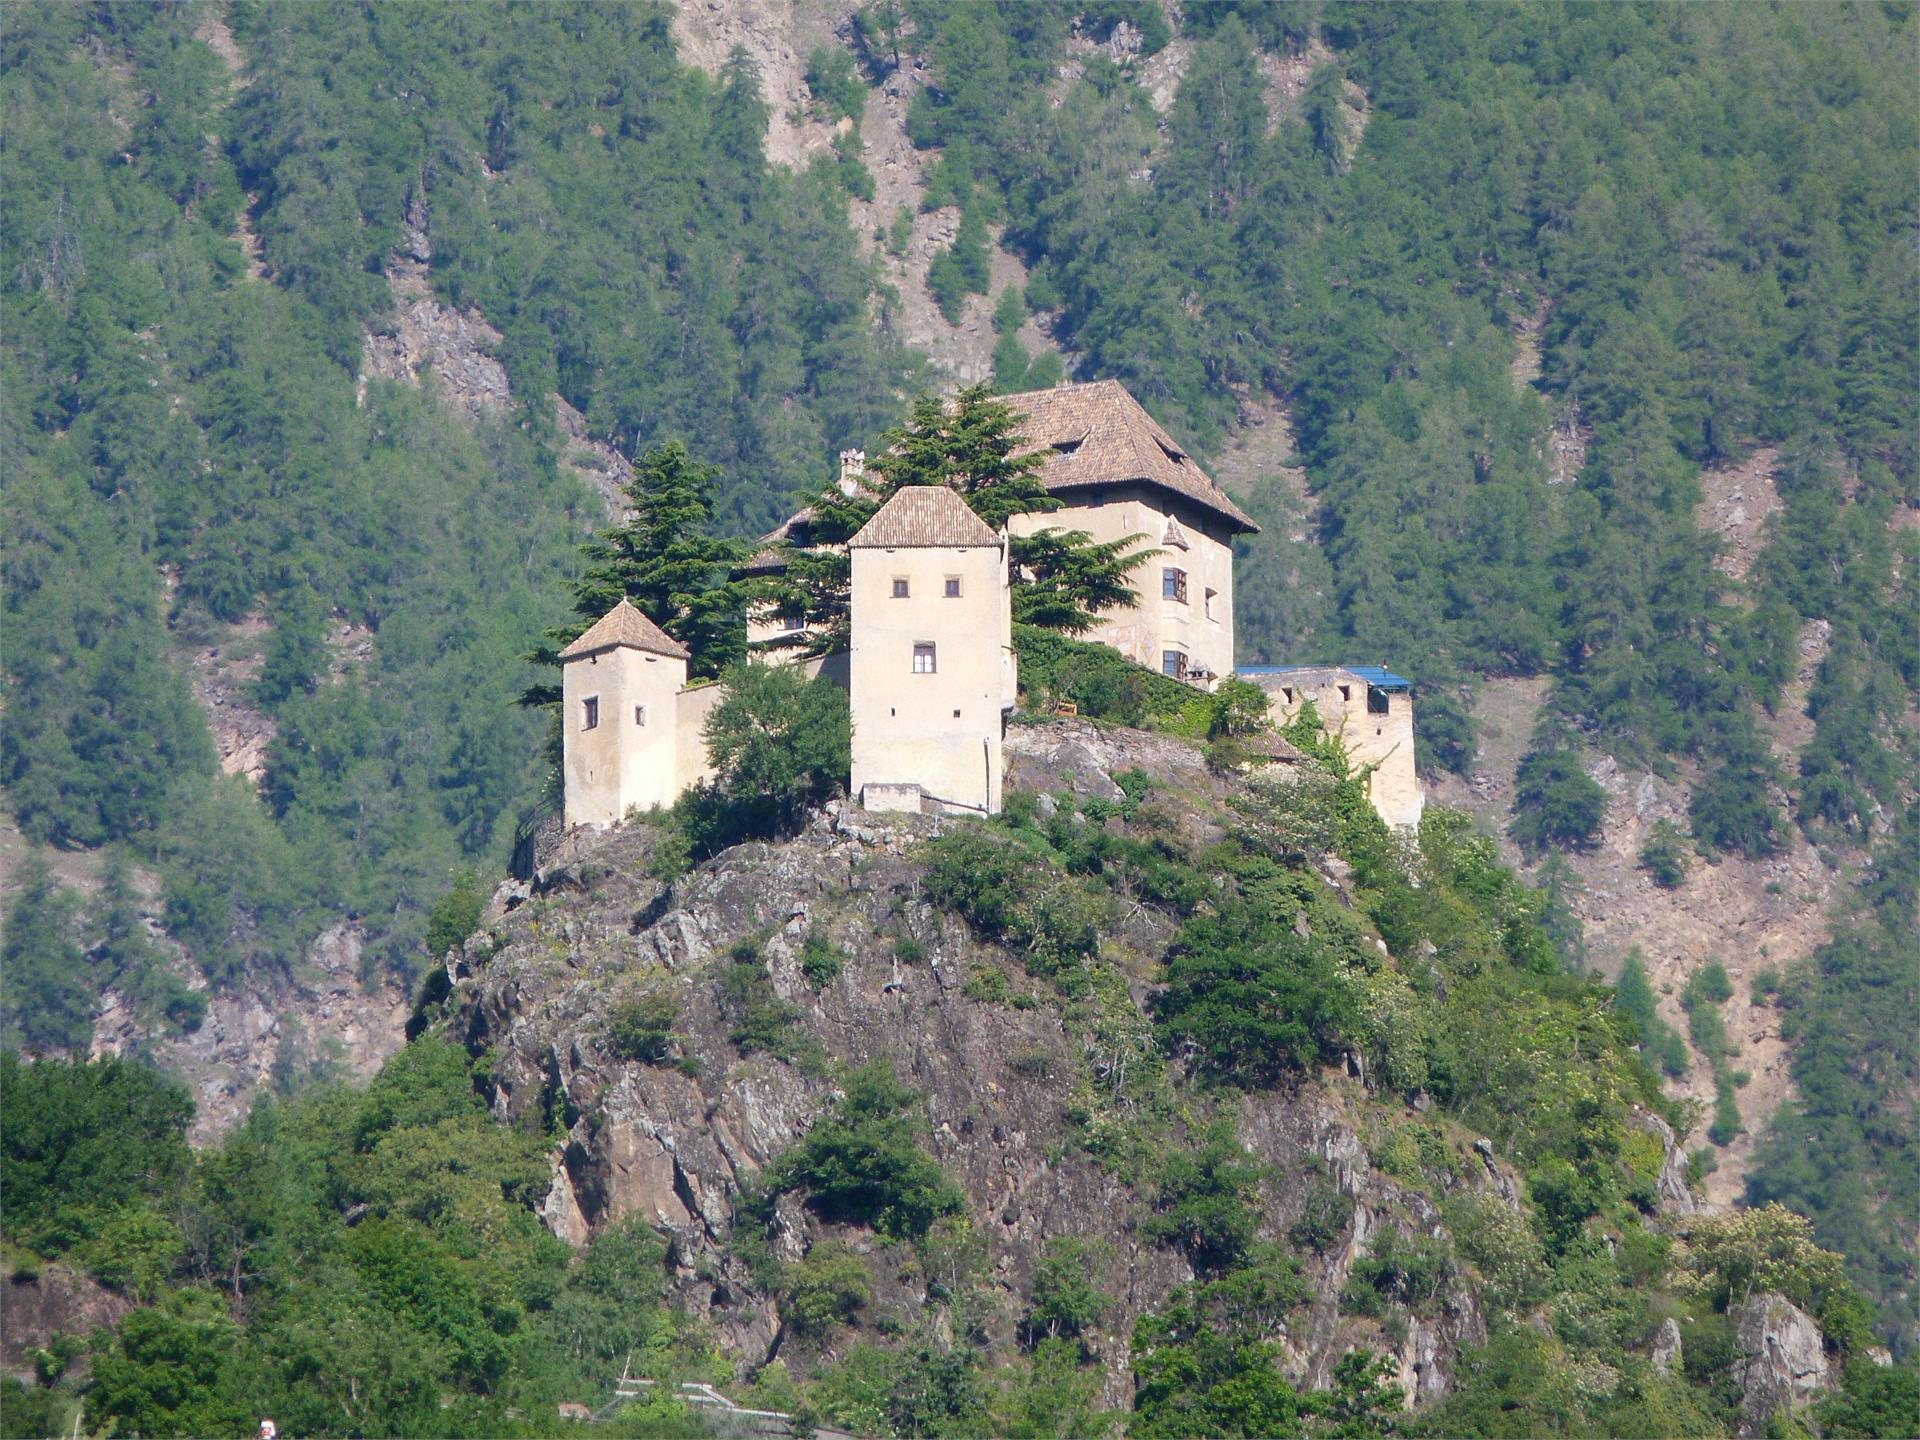 Juval Castle of Reinhold Messner